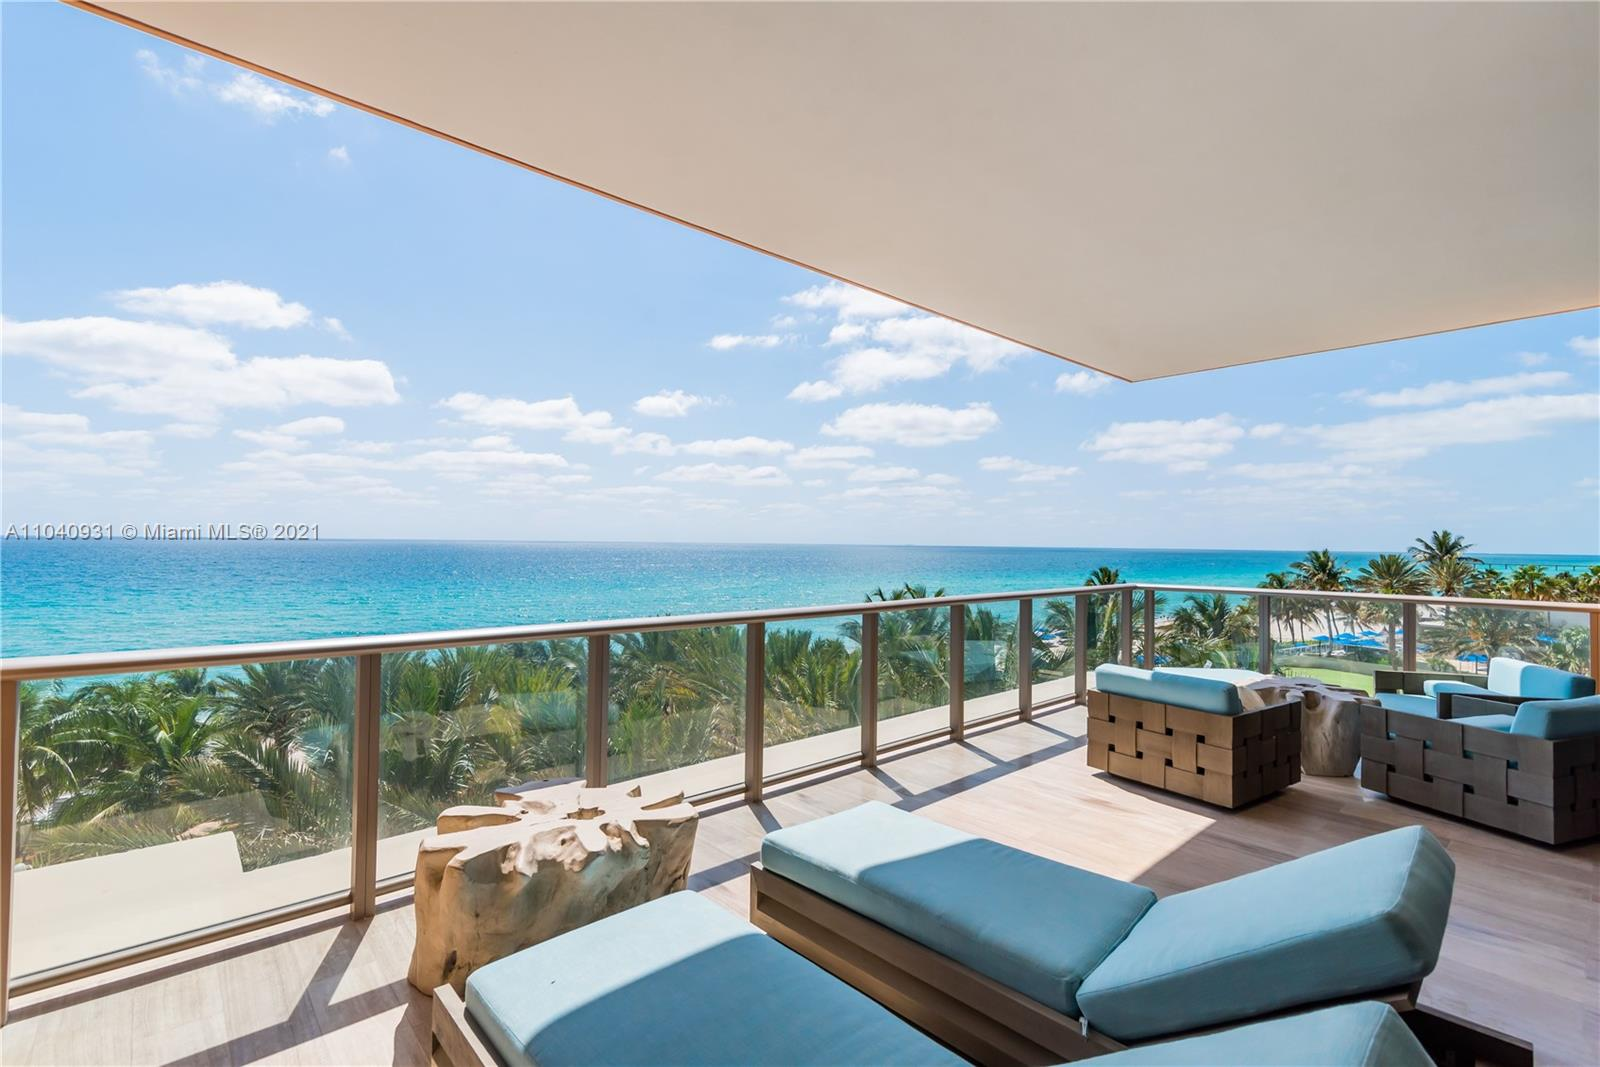 Spectacular oceanfront half floor residence with southern exposure. Feels like a beach house with incredible finishes and upgrades. The residence is in impeccable condition and ready to move in. It features a chef kitchen with Miele appliances, gas fireplace, Master suite with his and her baths, custom  leather closets, Crestron smart home system and 10'6 ceilings and east and west balconies where you can enjoy your own private Jacuzzi. An incredible opportunity to own in the magnificent Mansions at Acqualina and enjoy the five star services at your fingertips!